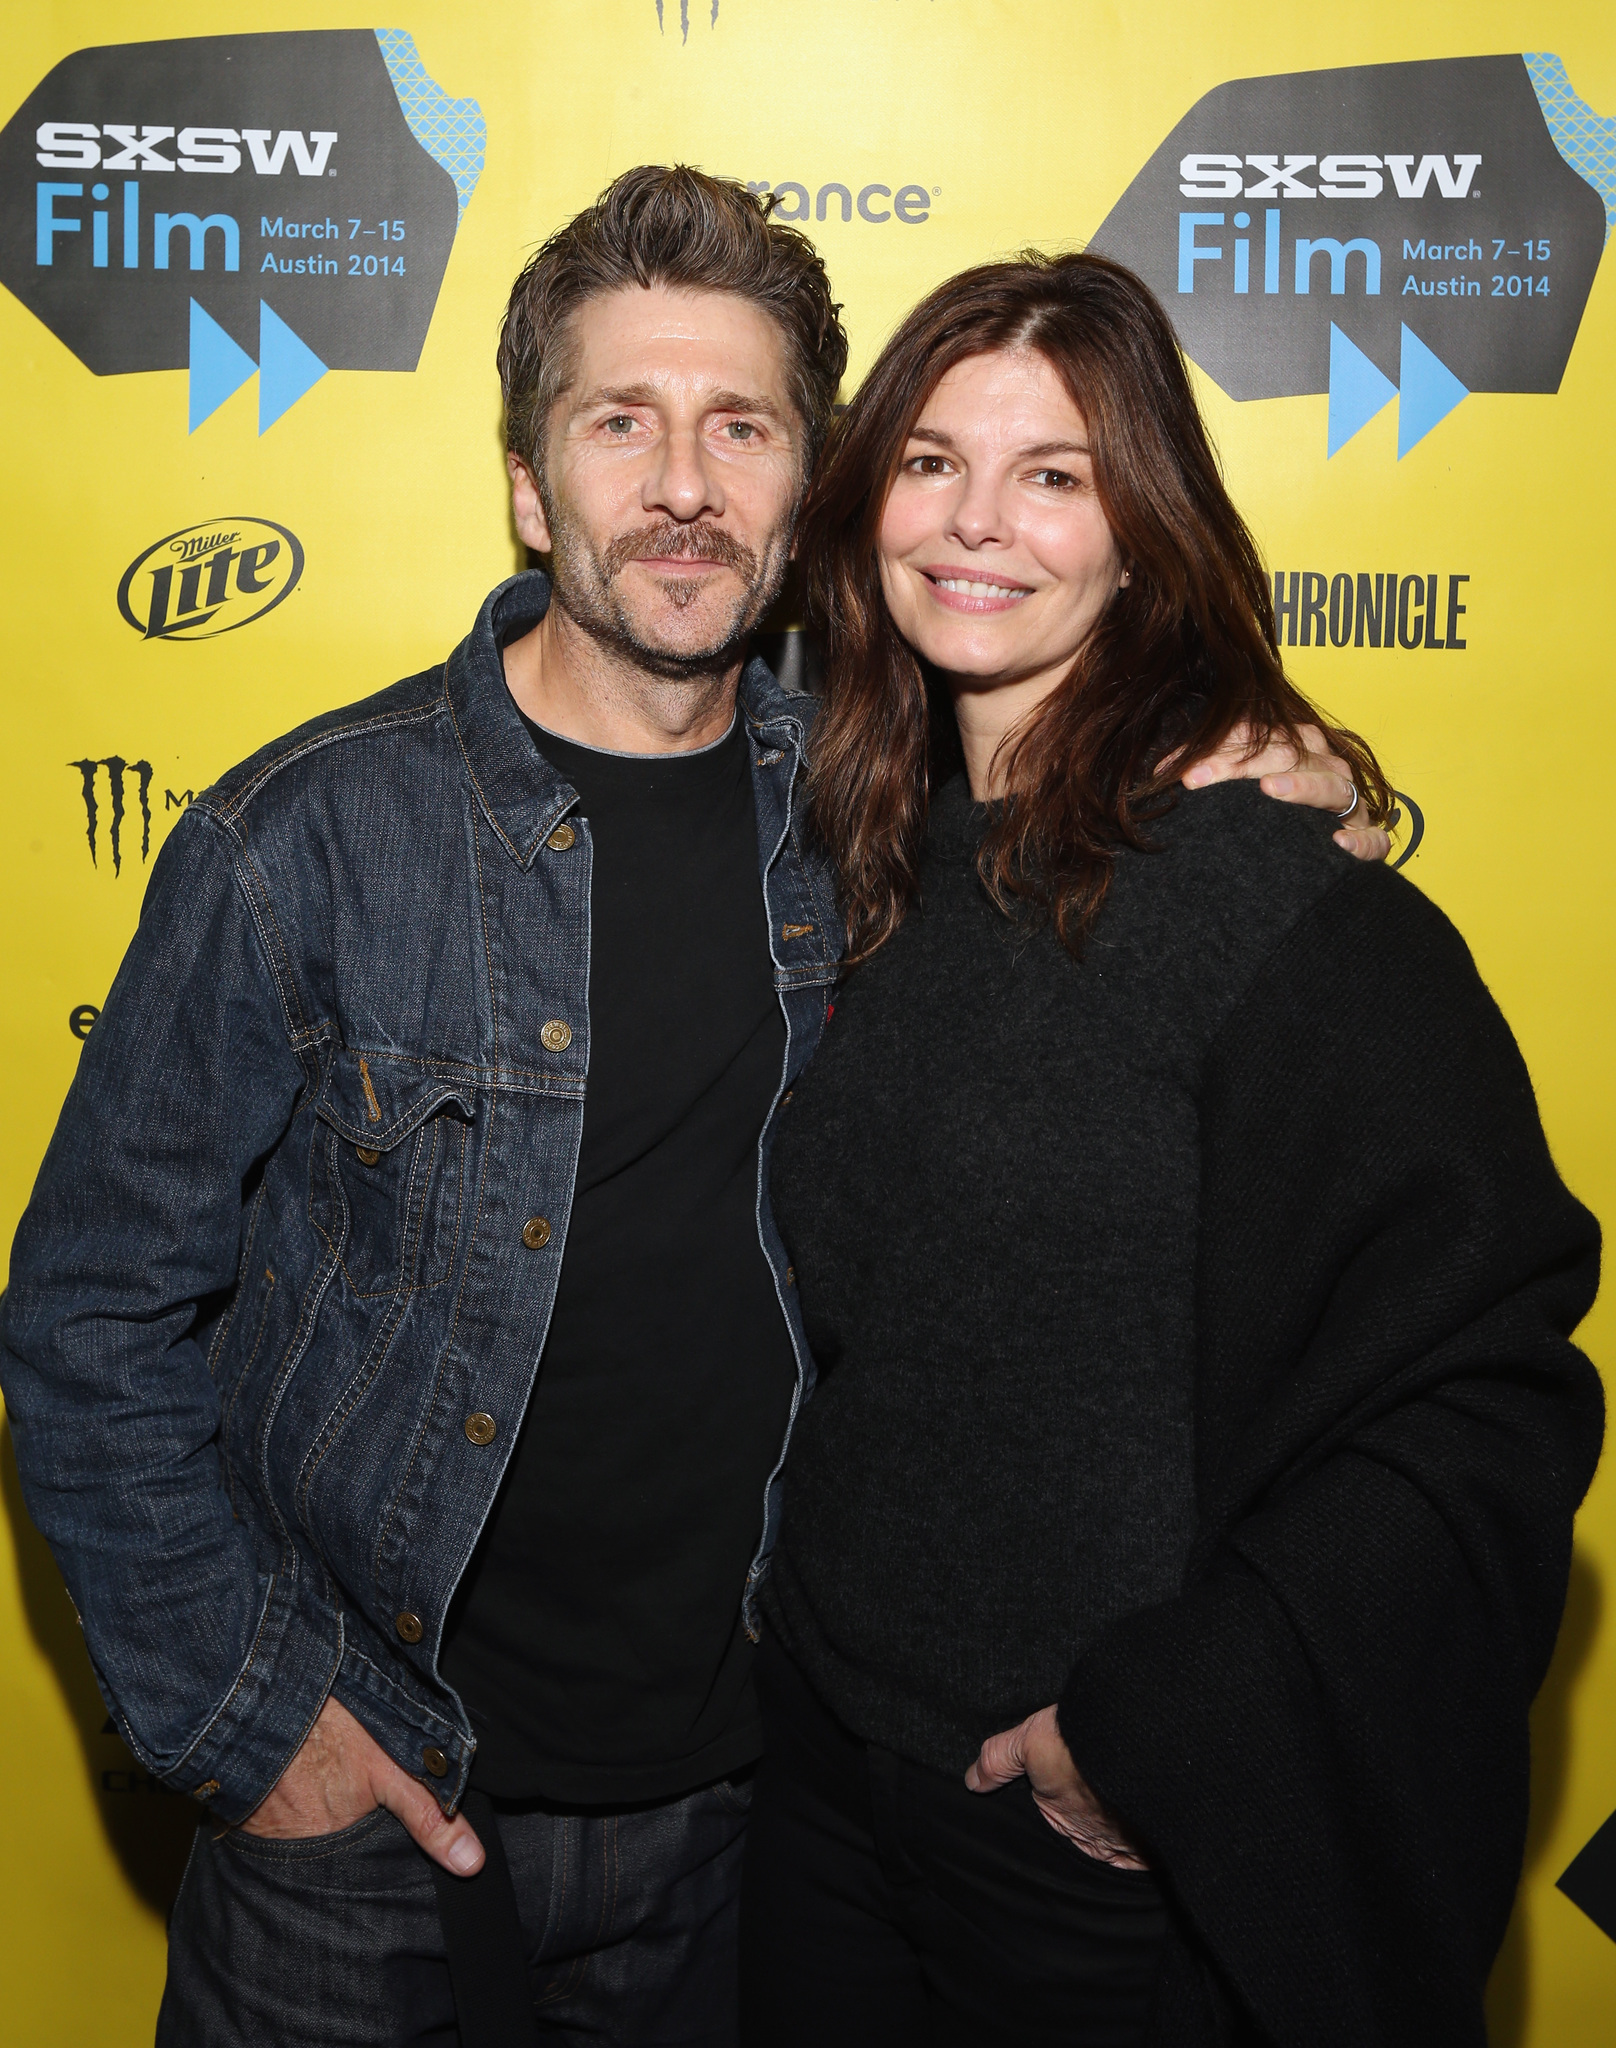 Jeanne Tripplehorn and Leland Orser at an event for Faults (2014)